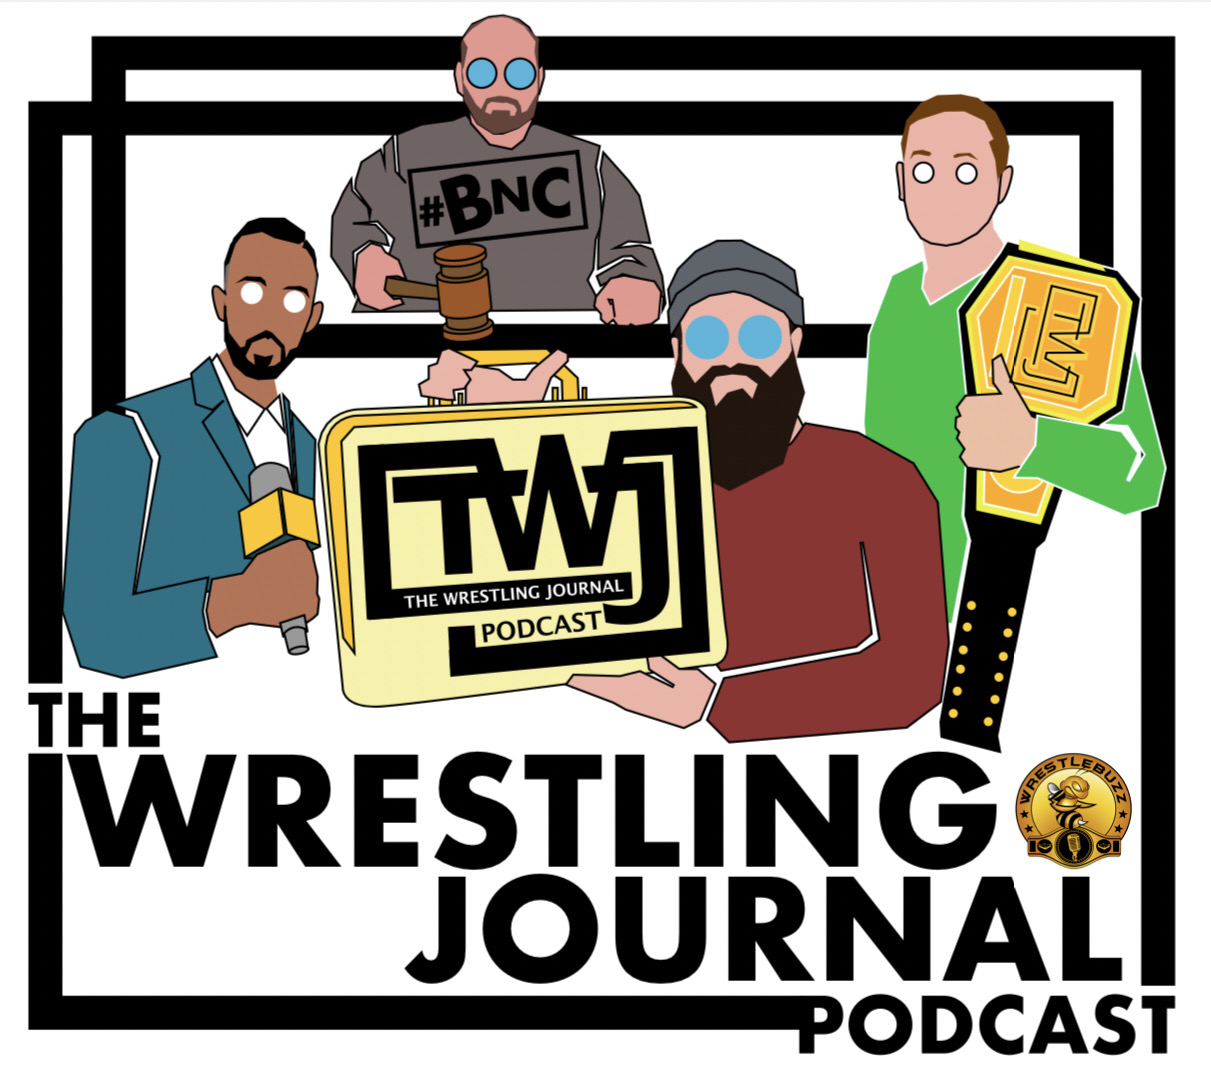 The Wrestling Journal Podcast